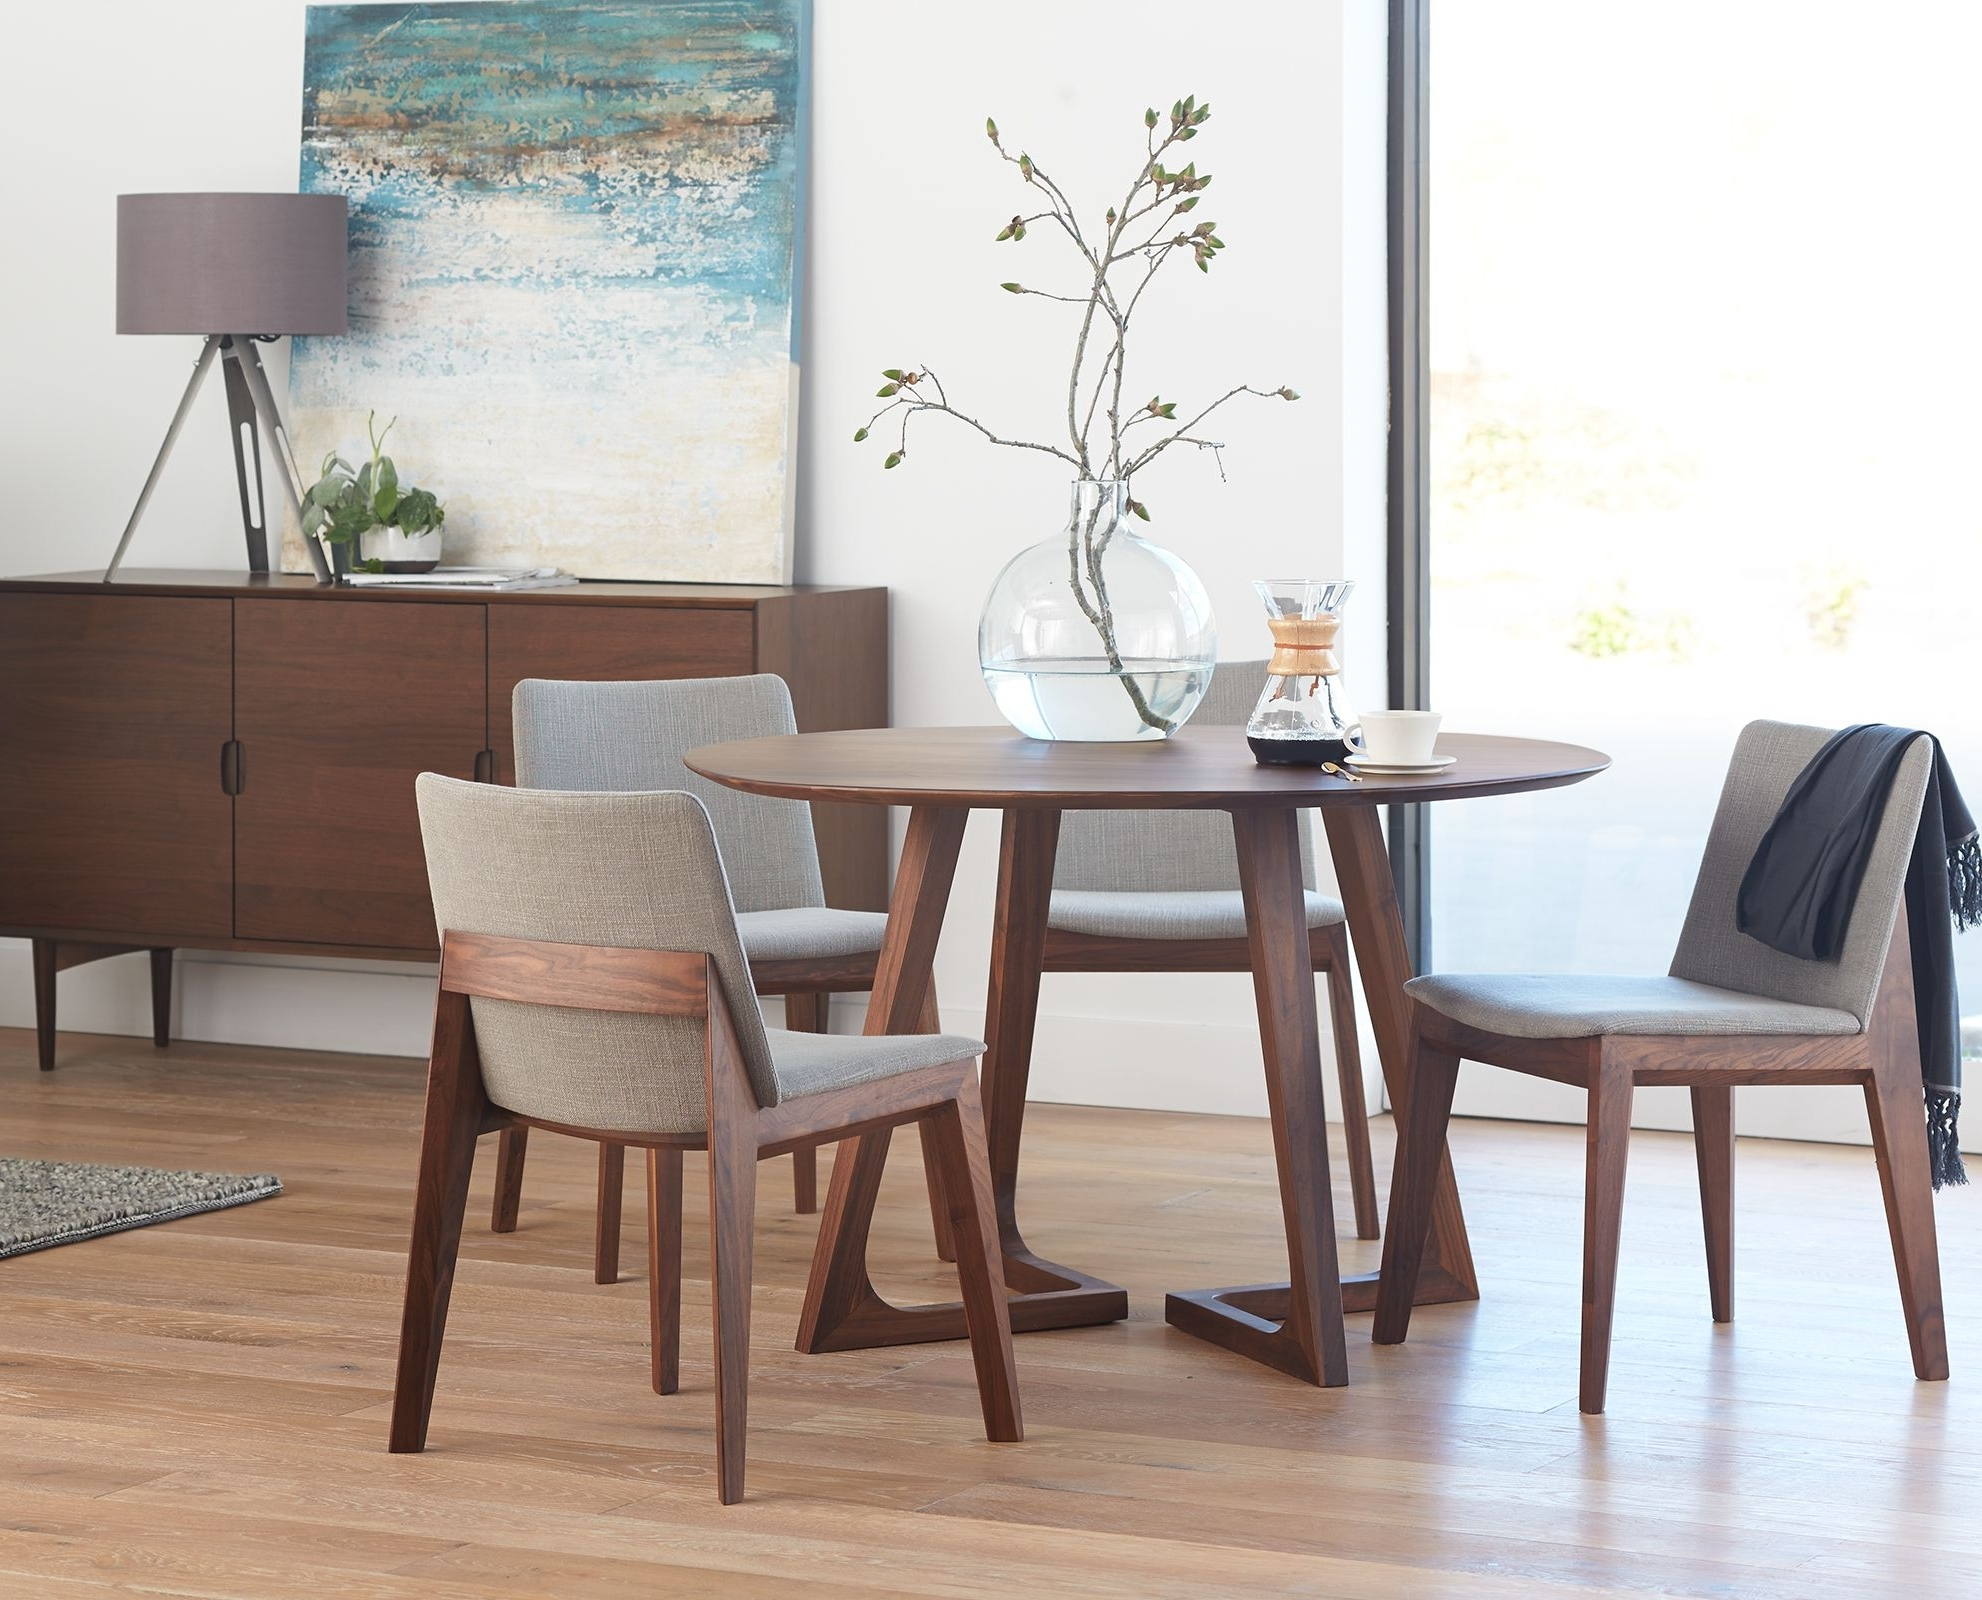 Scandinavian Dining Tables And Chairs Inside Preferred Round Table And Chairs From Dania (View 2 of 25)